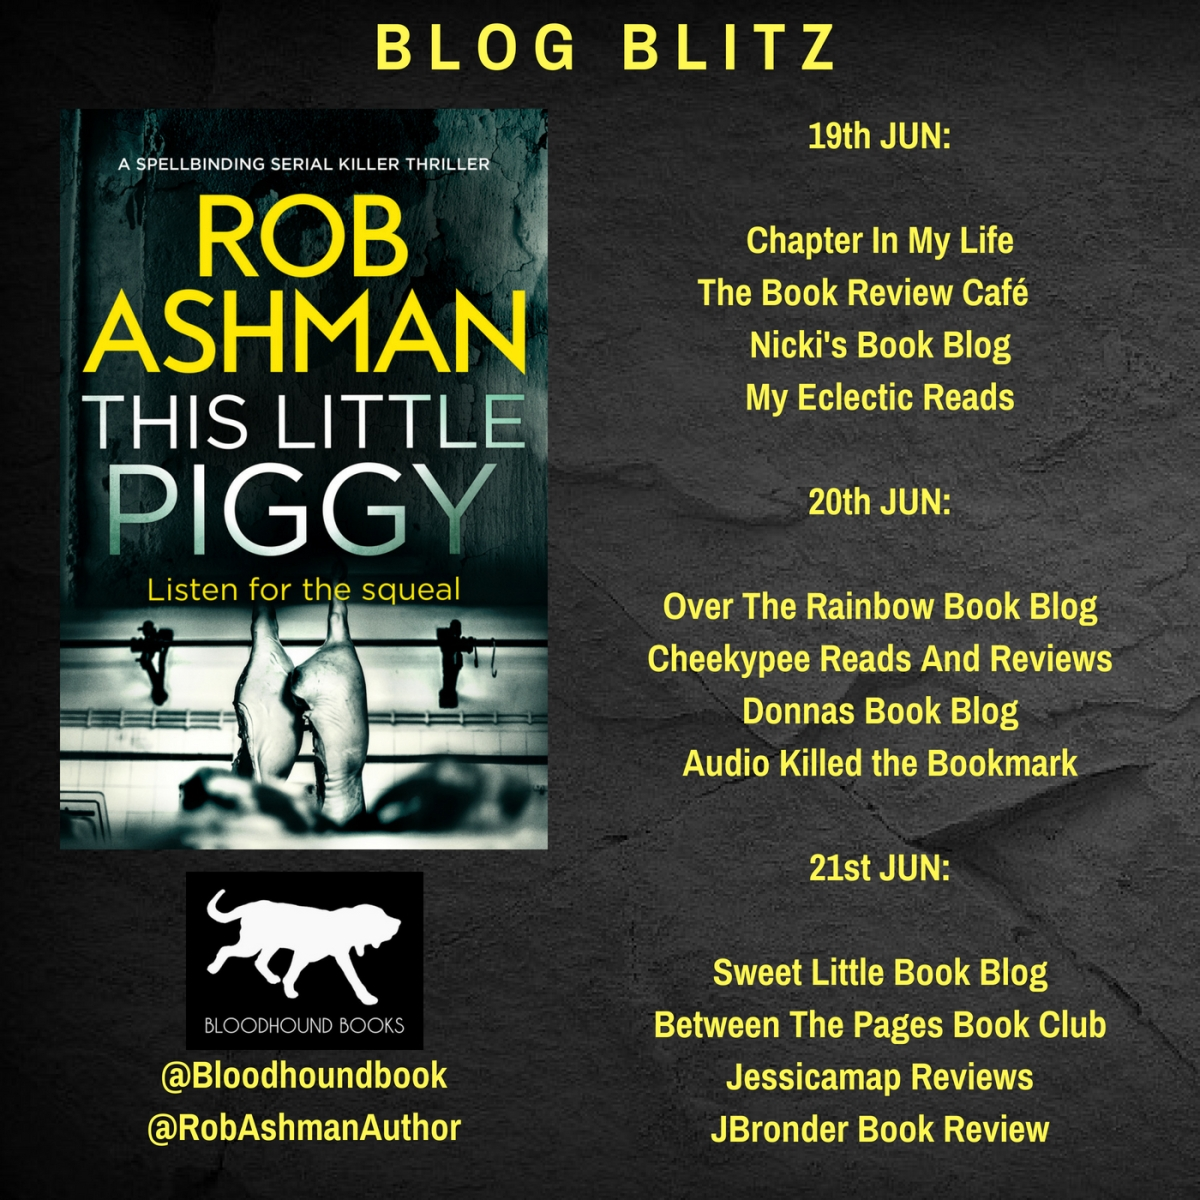 #ThisLittlePiggy by Rob Ashman #BlogBlitz @RobAshmanAuthor @Bloodhoundbook #MustReads